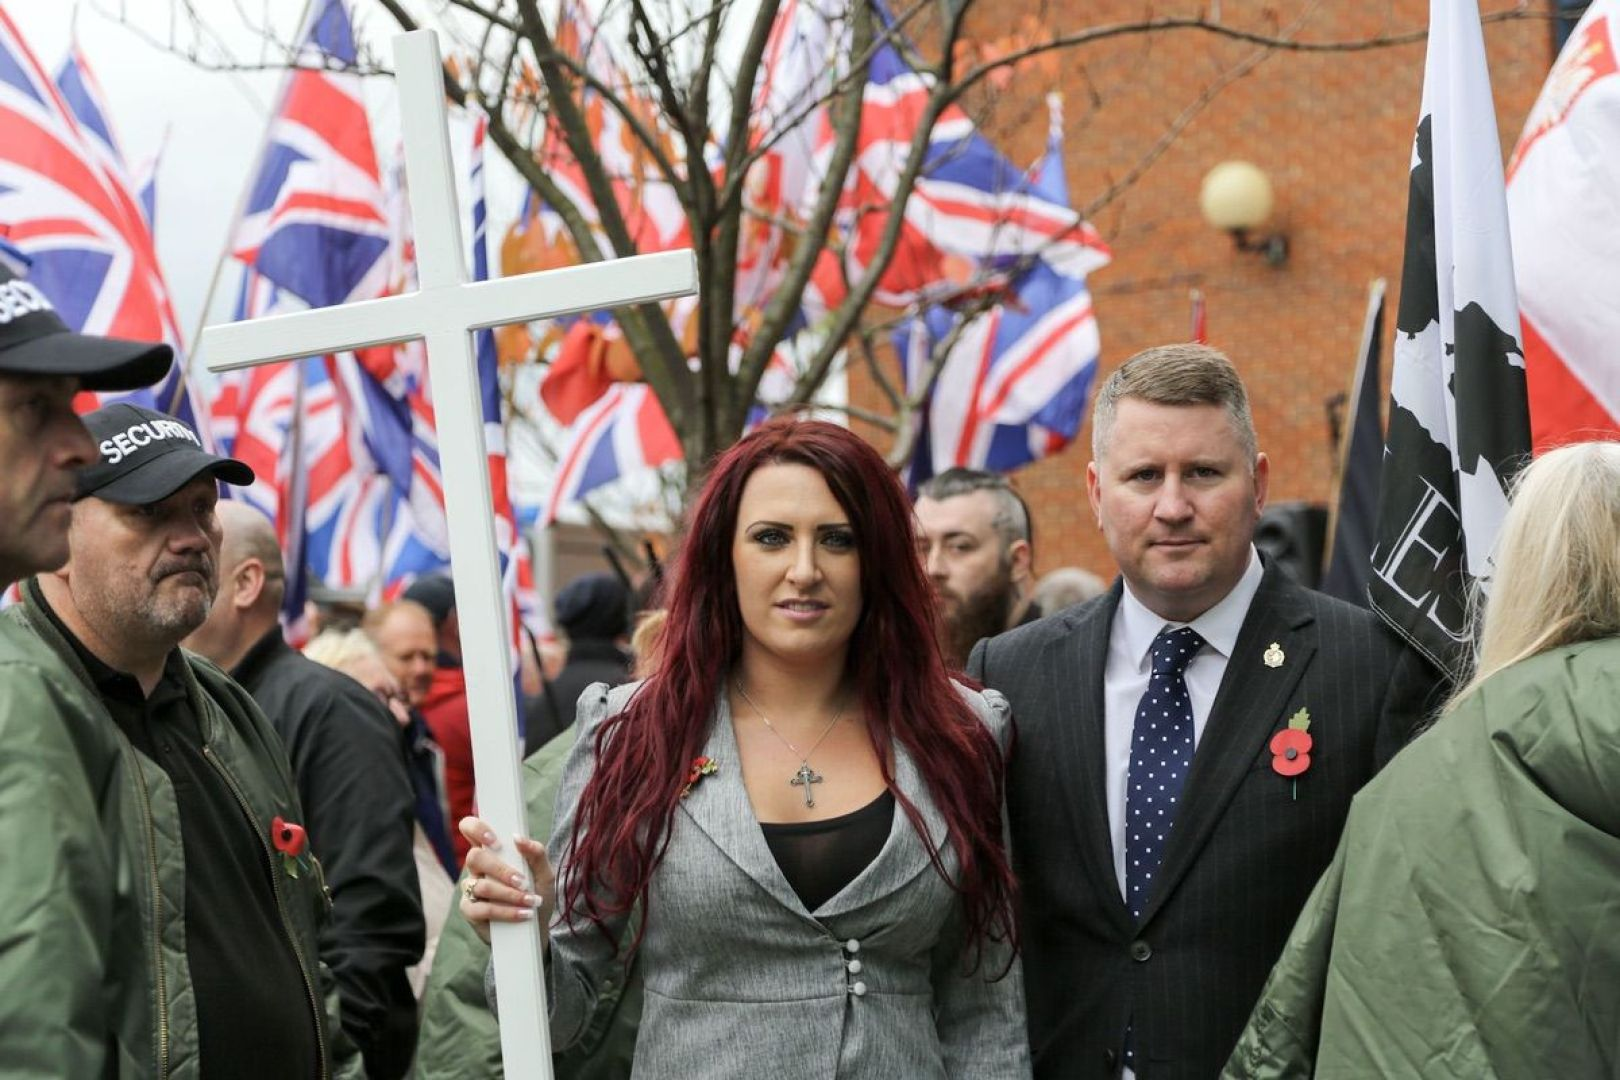 Jayda Fransen and Paul Goulding, leaders of the far right group Britain First, at a rally in London on November 4, 2017. (Associated Press)